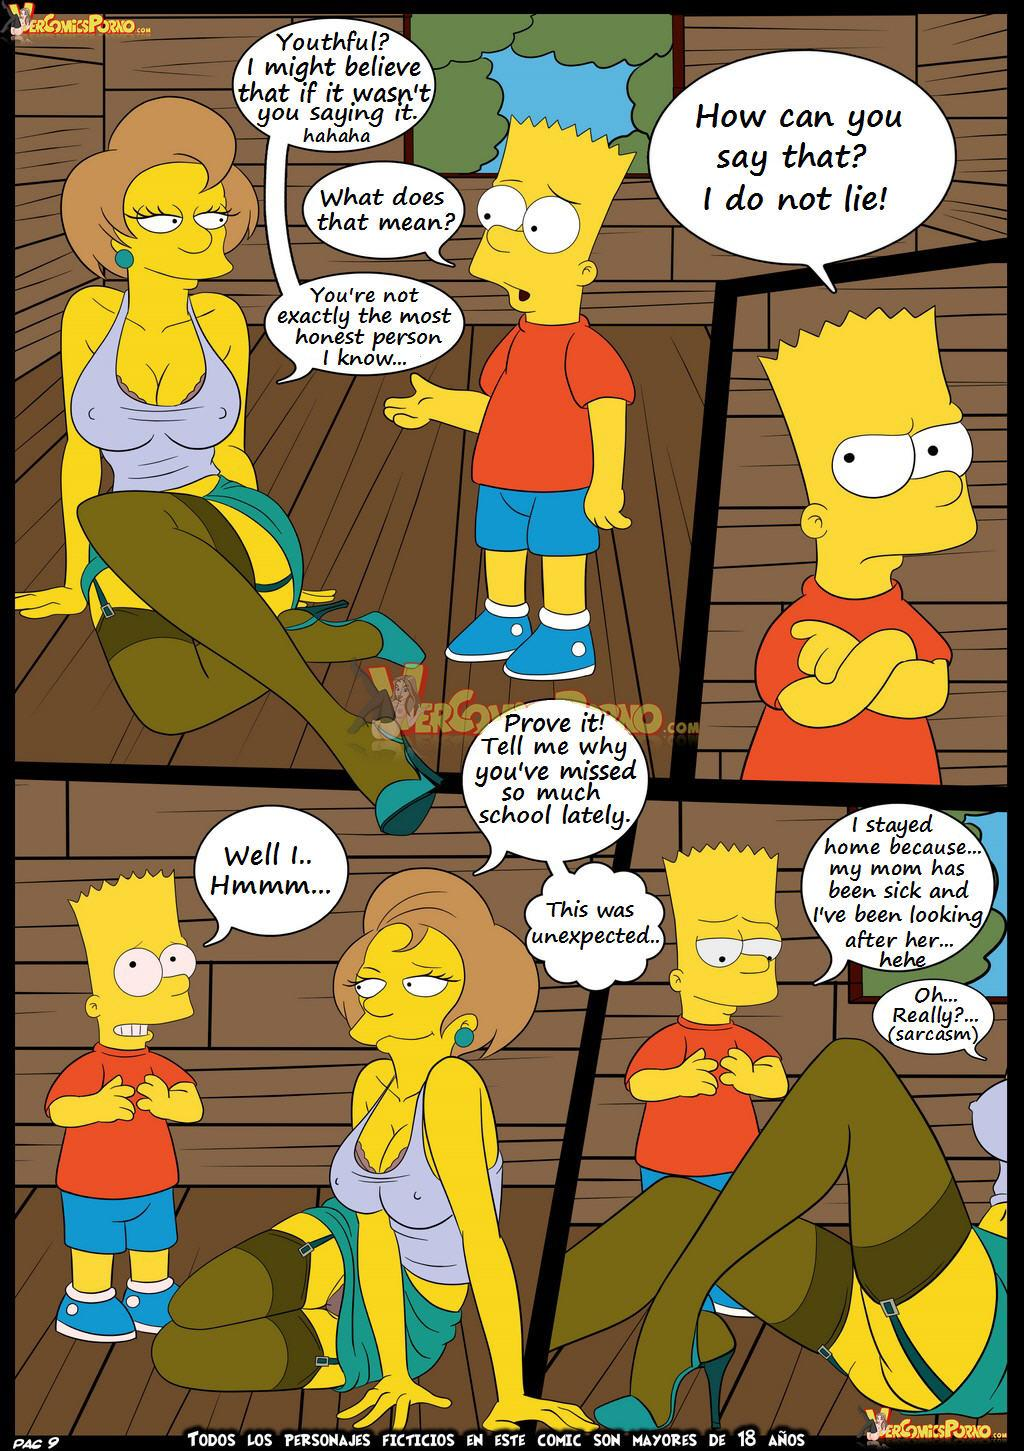 10 43 - The Simpsons. Part 5.